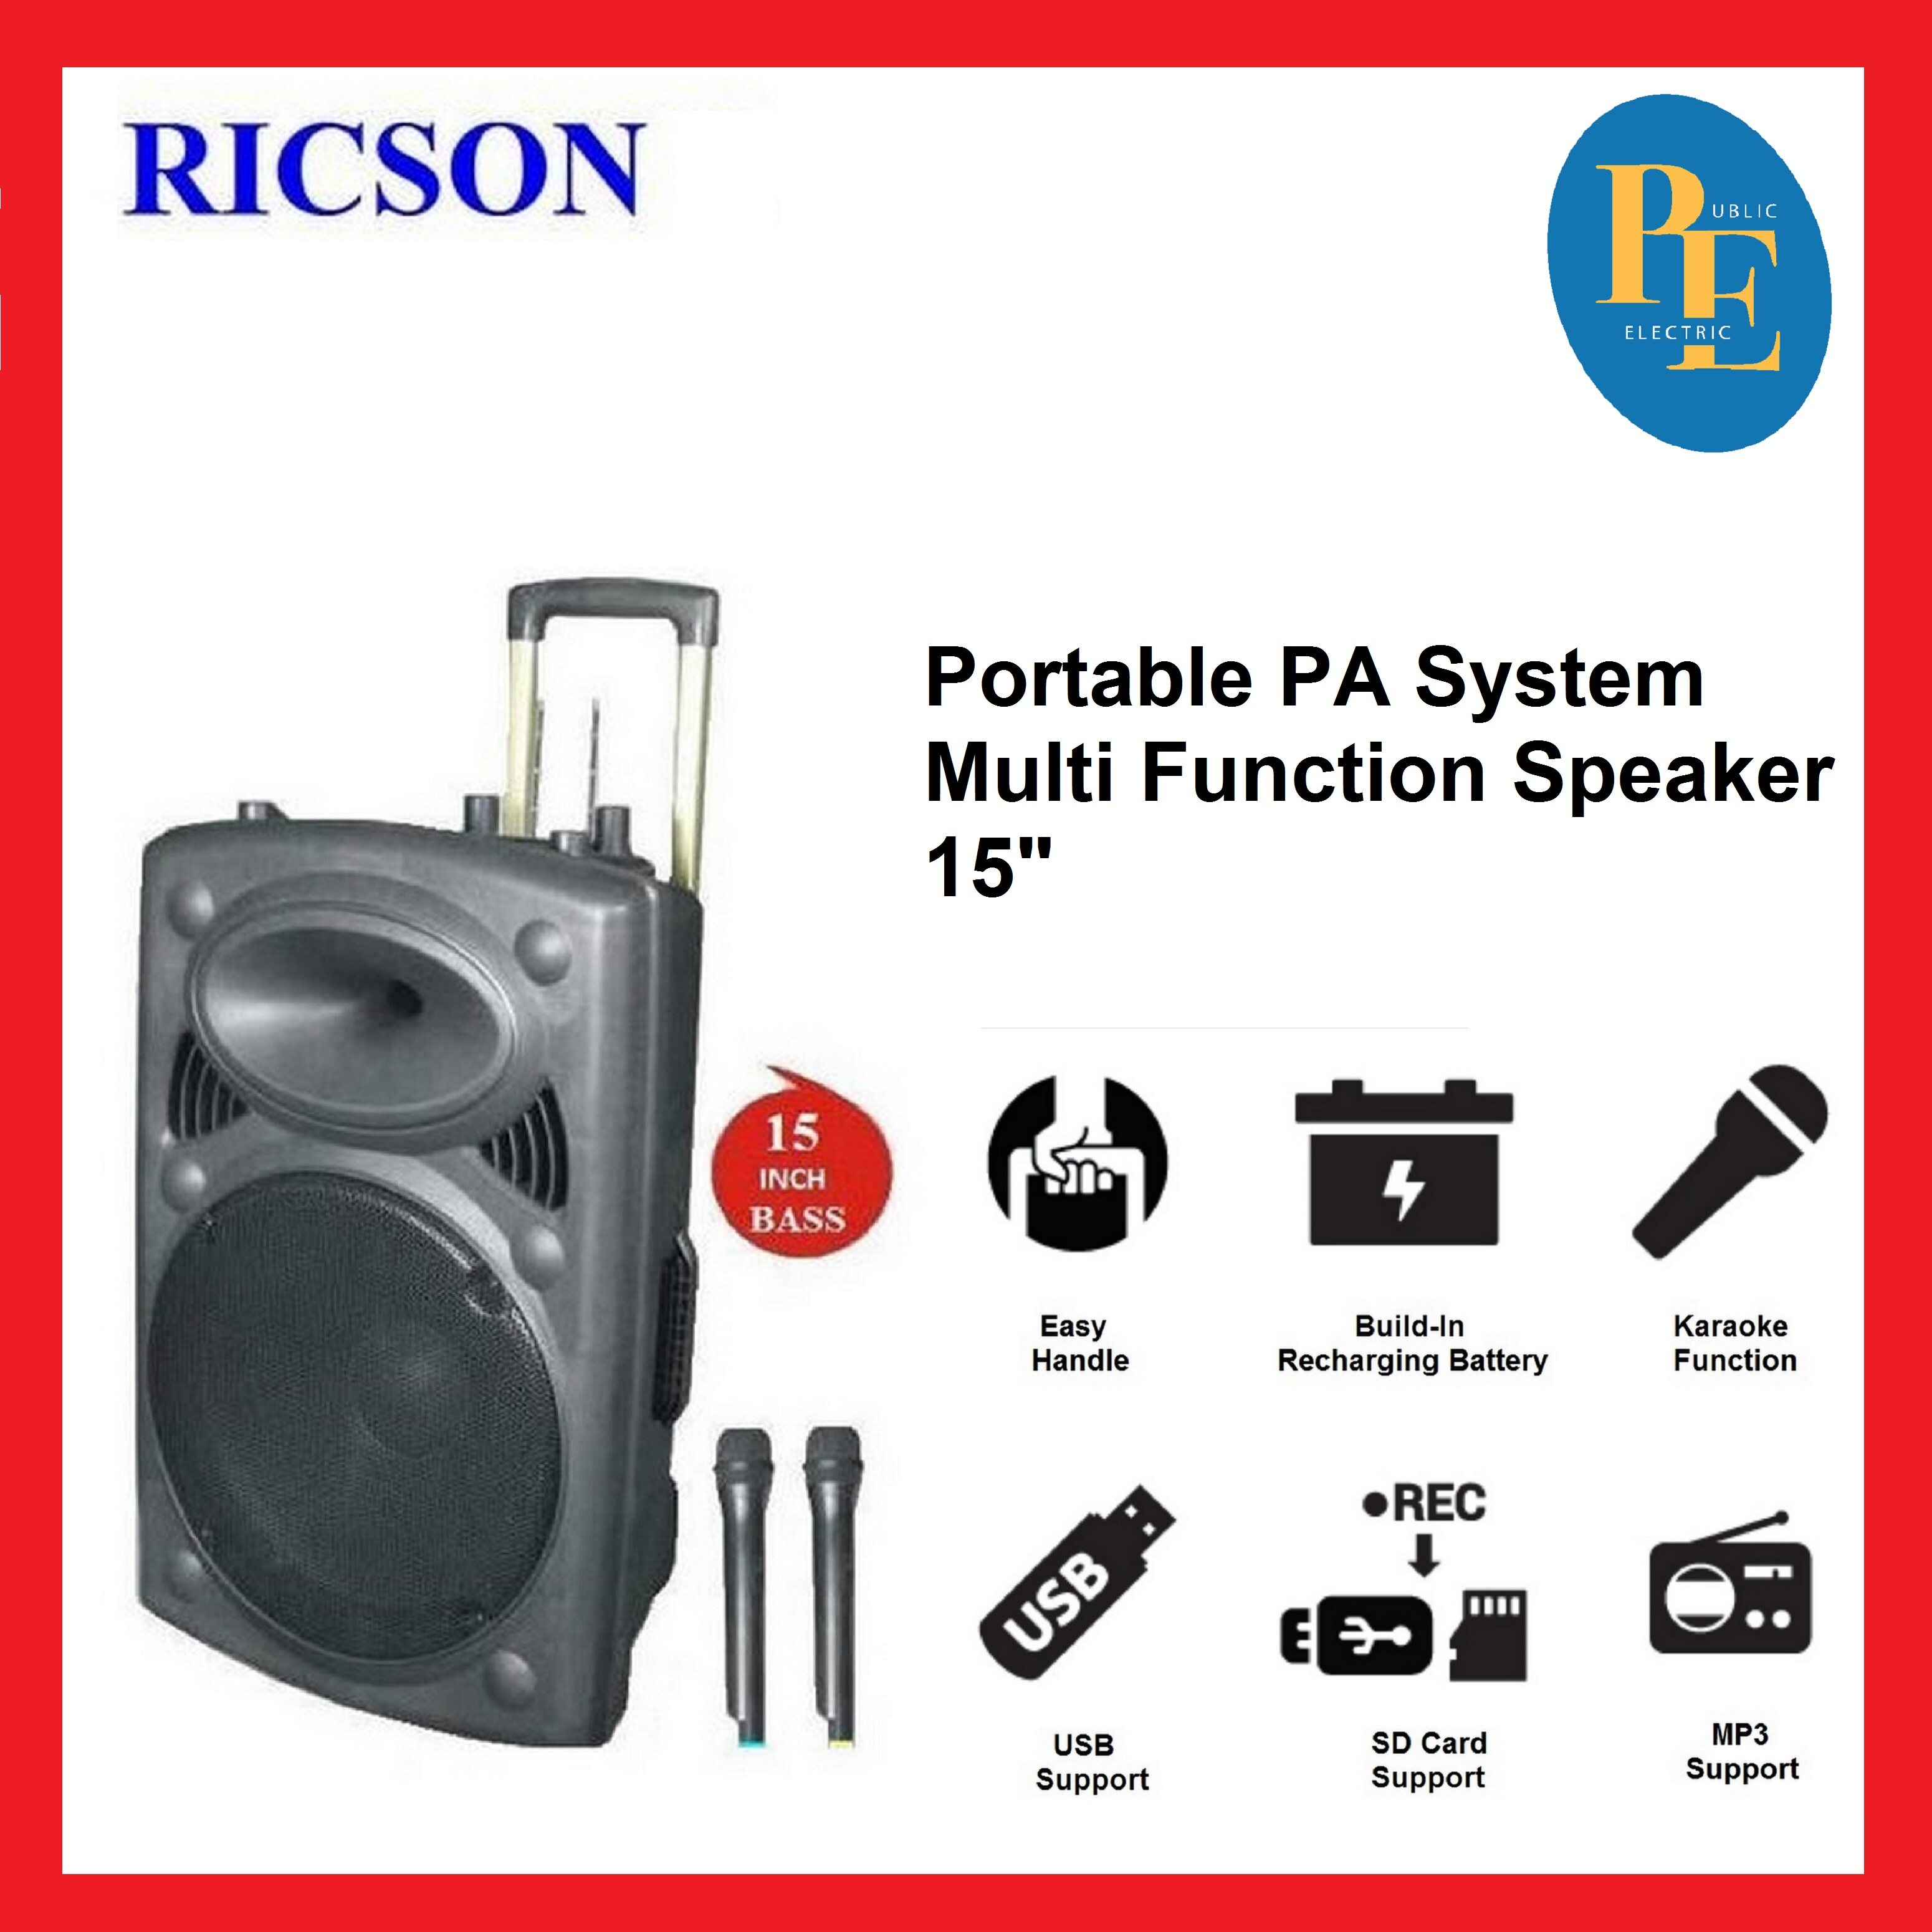 "Ricson Portable PA System Multi Function Speaker 15"" - A-15BT"